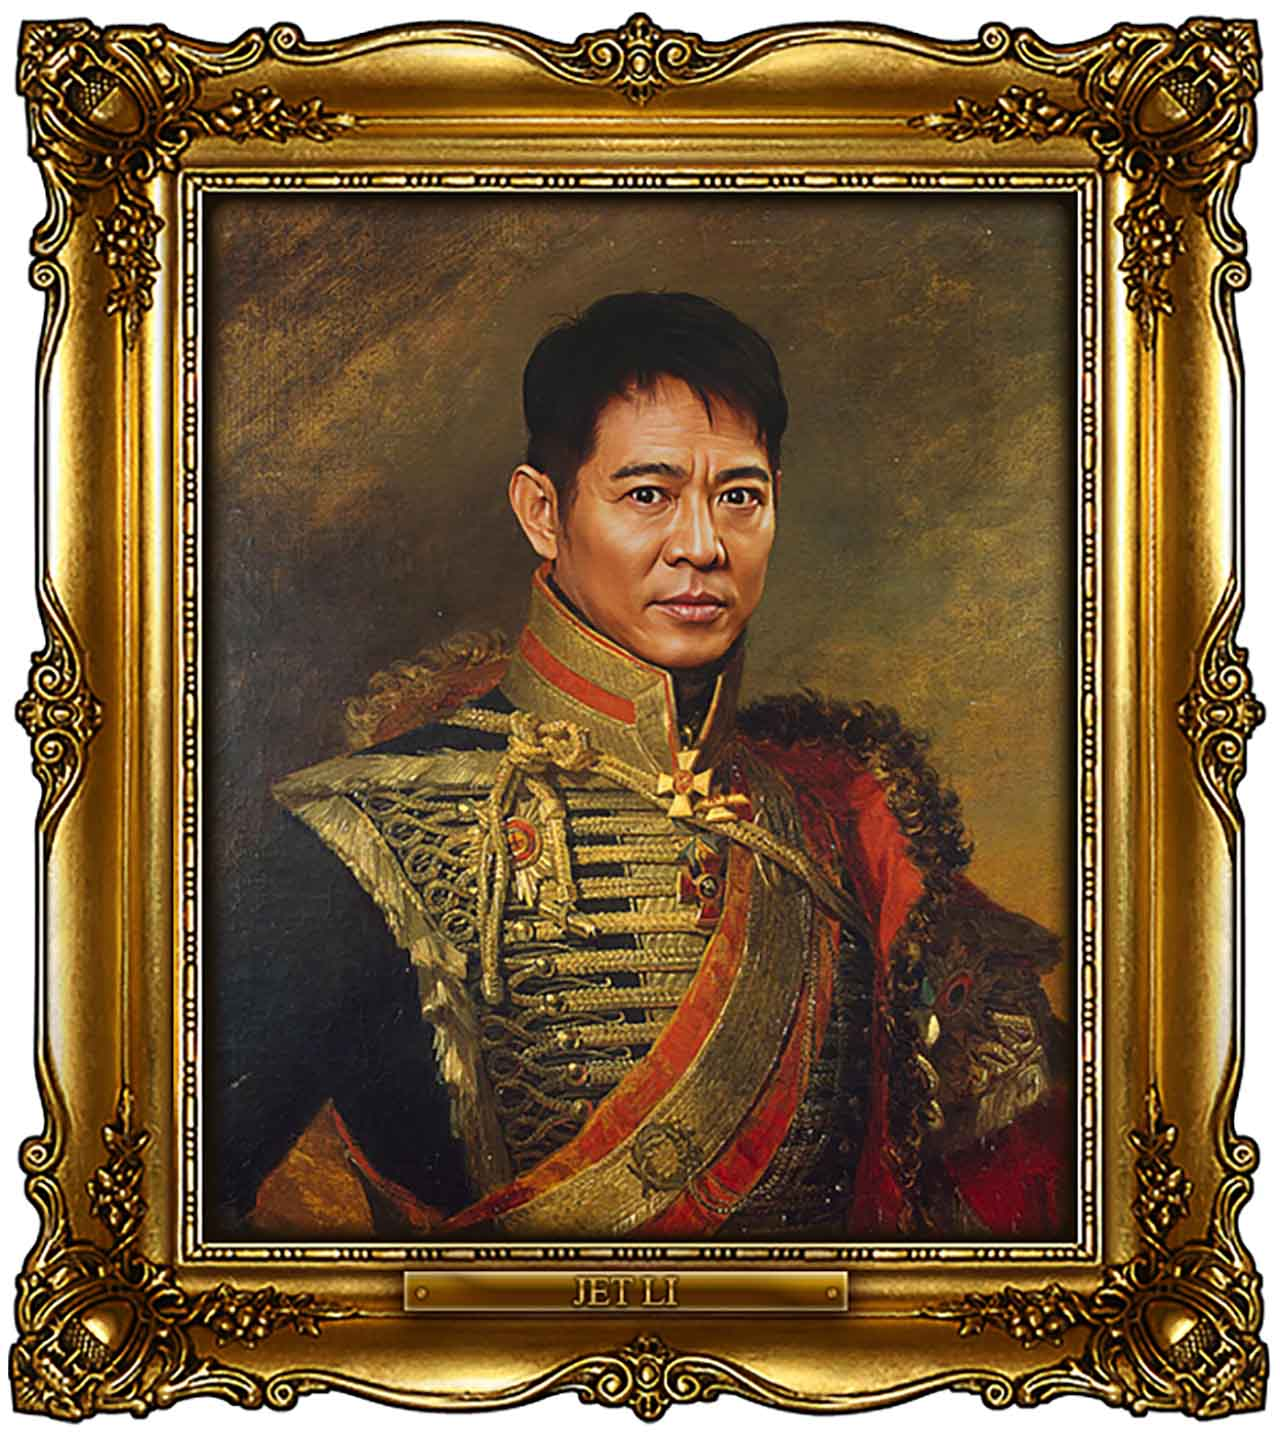 Artist Turns Famous Actors Into Russian Generals - Jet Li